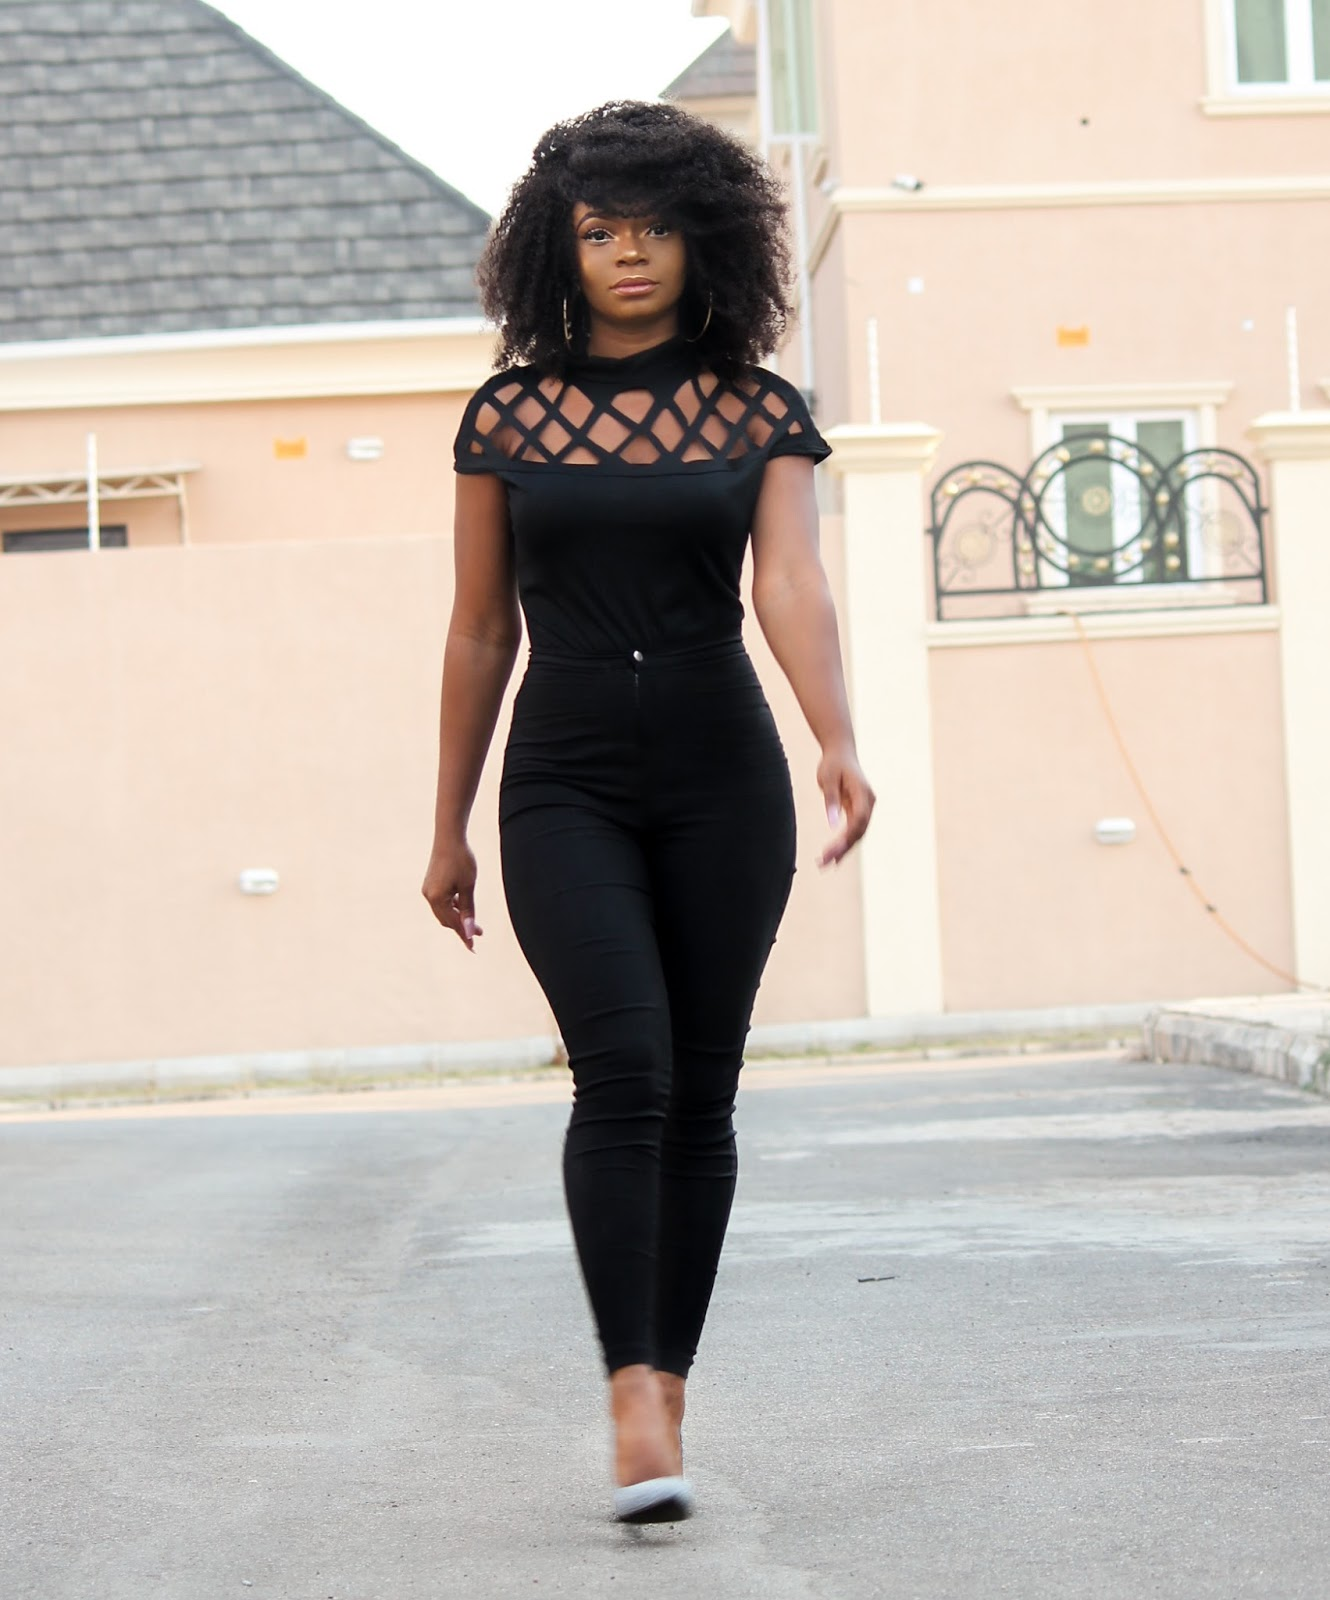 BLACK IS THE NEW BLACK - Black Caged Top, Black High Waisted Pants, Glitter Court Shoes from Jumia